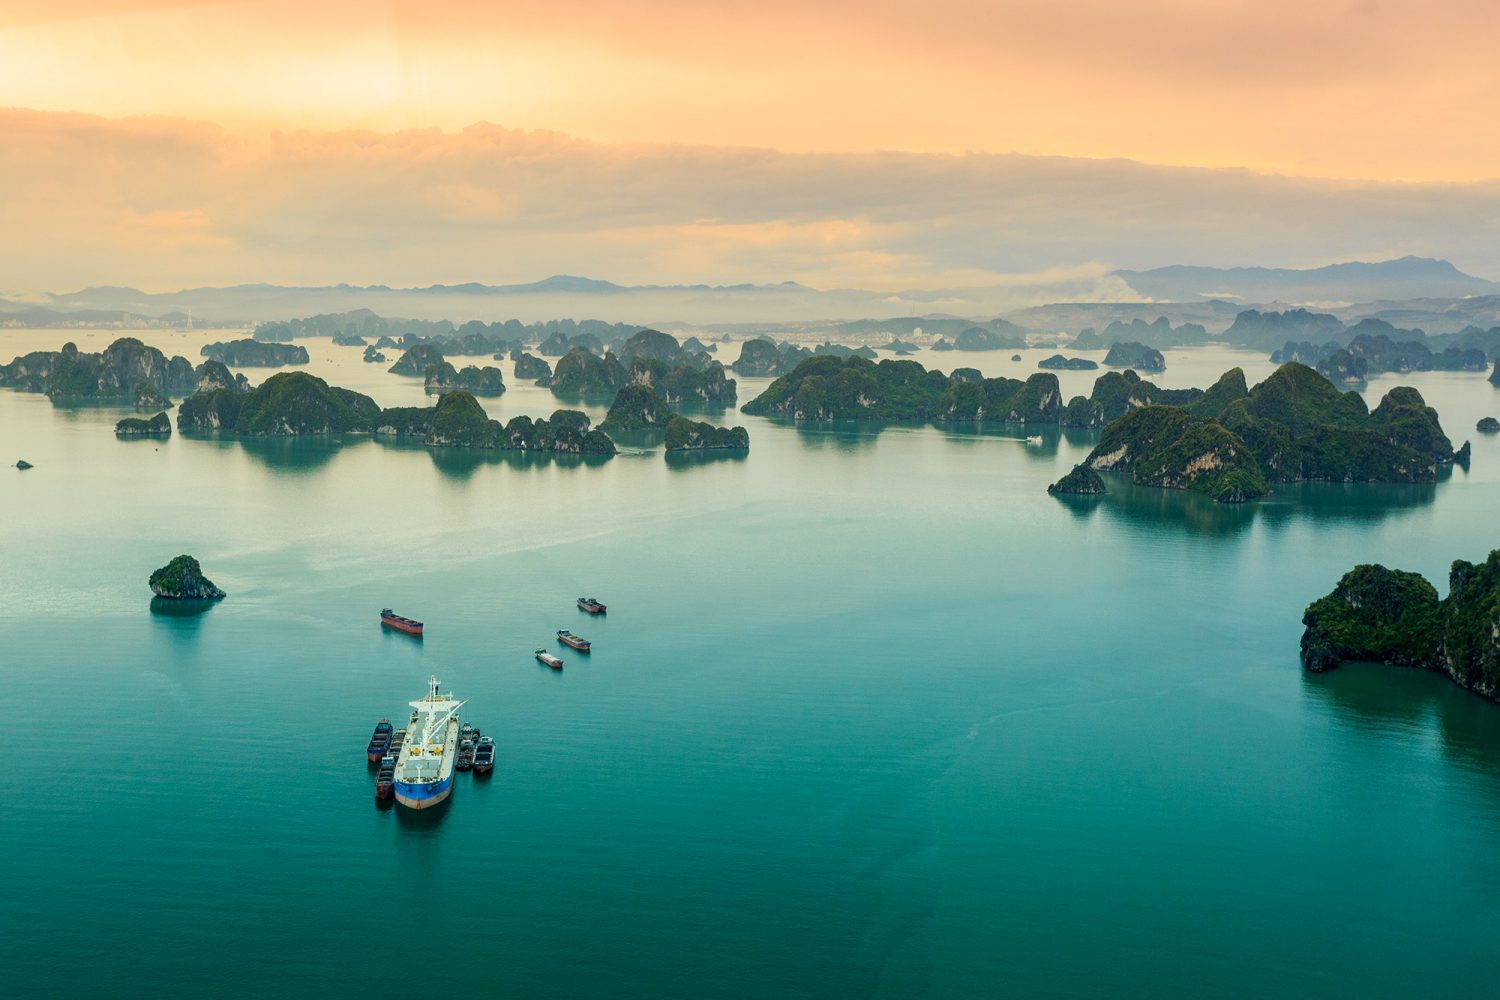 Halong Bay Tour 3 Days 2 Nights from Hanoi By Shuttle Bus